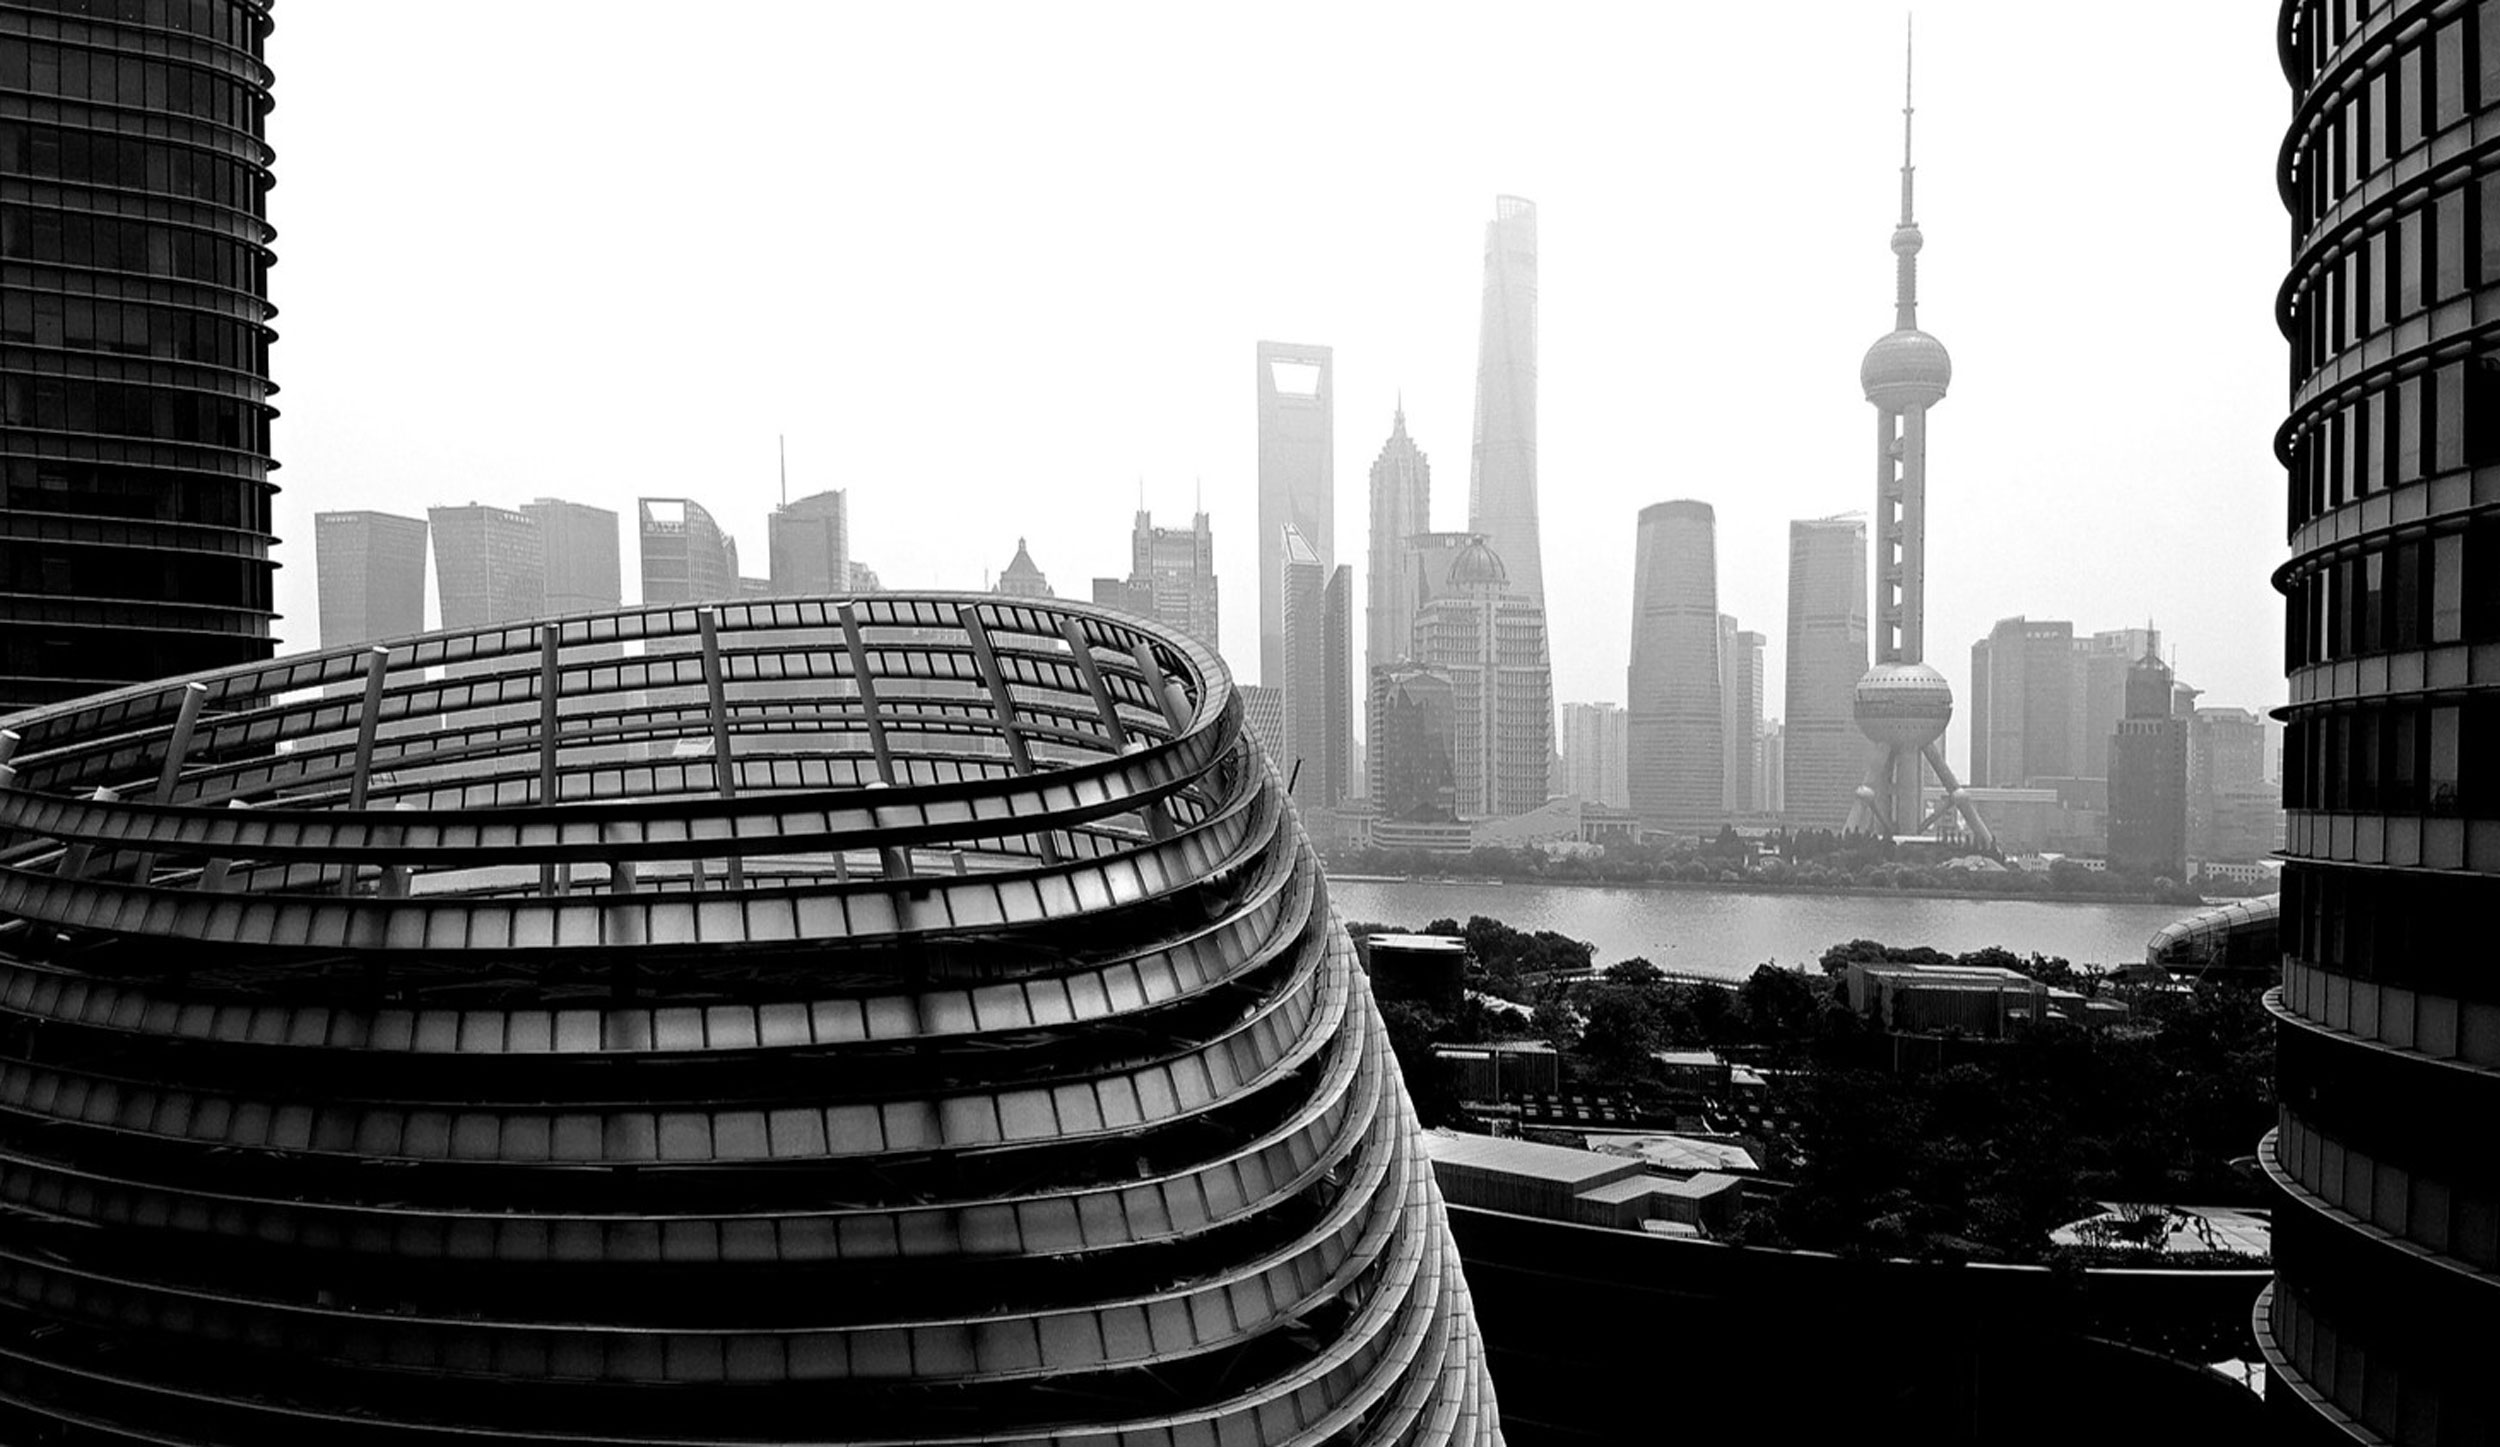 designworks studio in front of shanghai skyline